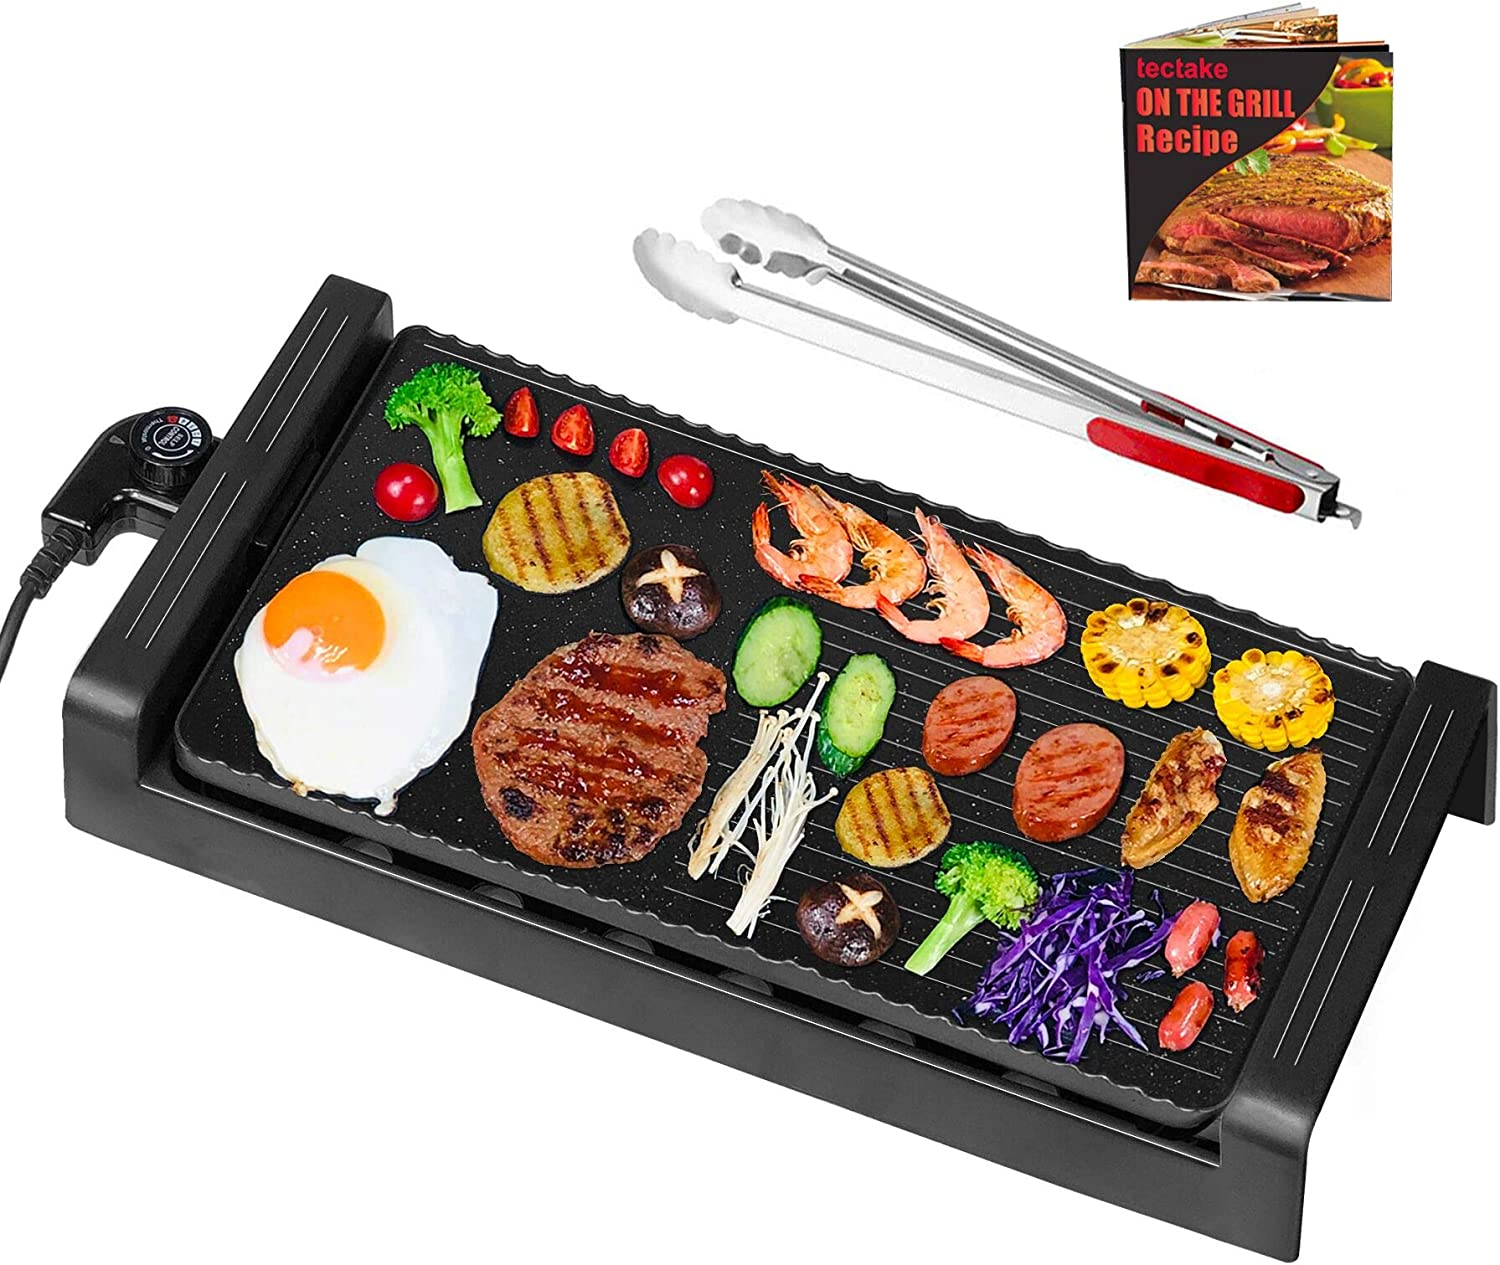 Electric Griddle Grill Indoor - Nonstick Korean BBQ Flat Grills Extra Large, Family-sized Pancake Griddles, Less Smoke, 5 Thermostat Modes, with Receipts, Black